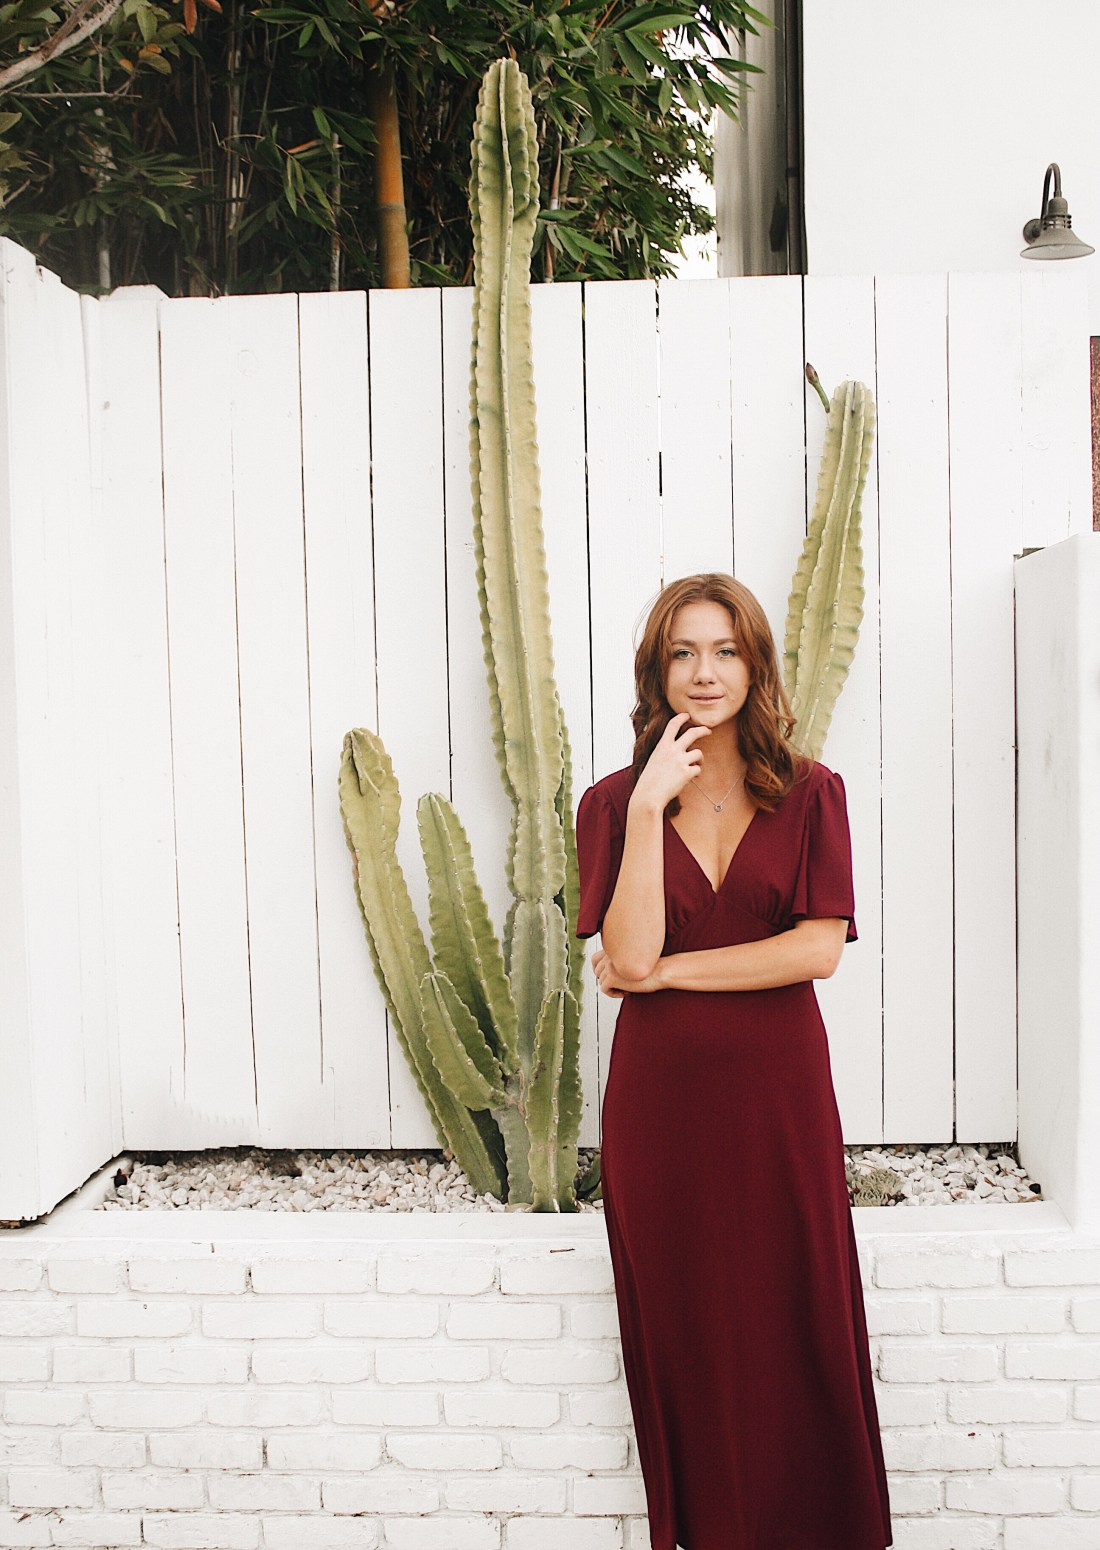 AU & Co. Effortless, chic, boho, handmade clothing local to southern california